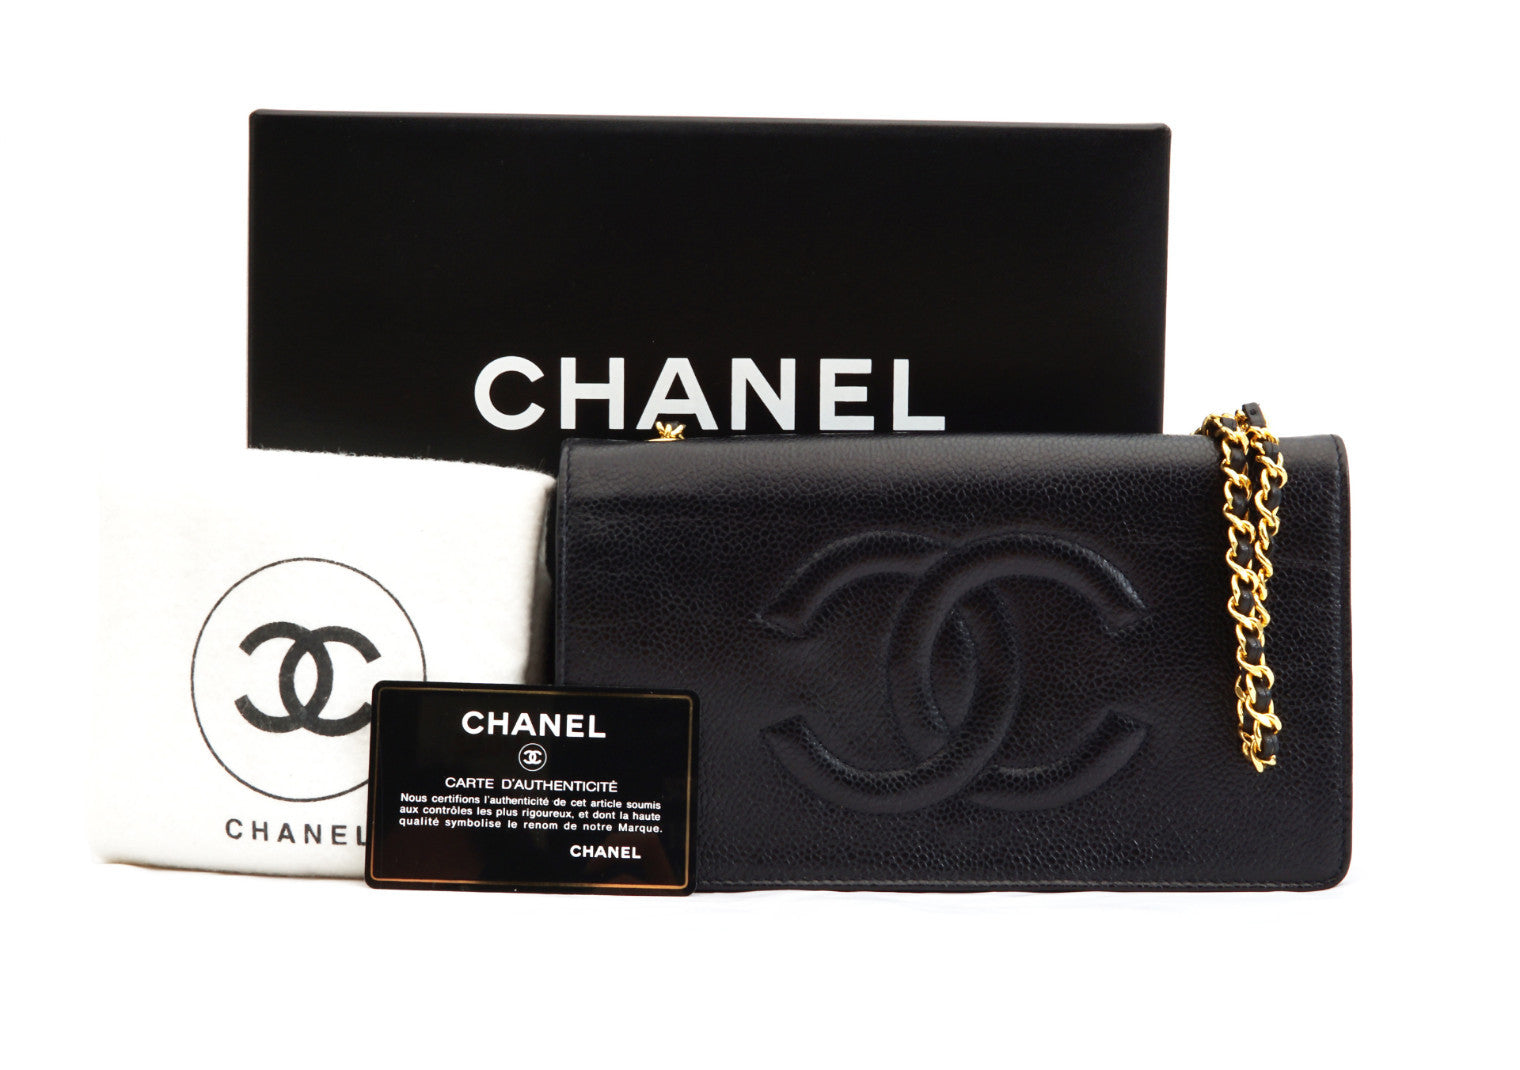 ccb28e1f8c69 CHANEL VINTAGE WALLET ON CHAIN - Caviar Black - Vintage District